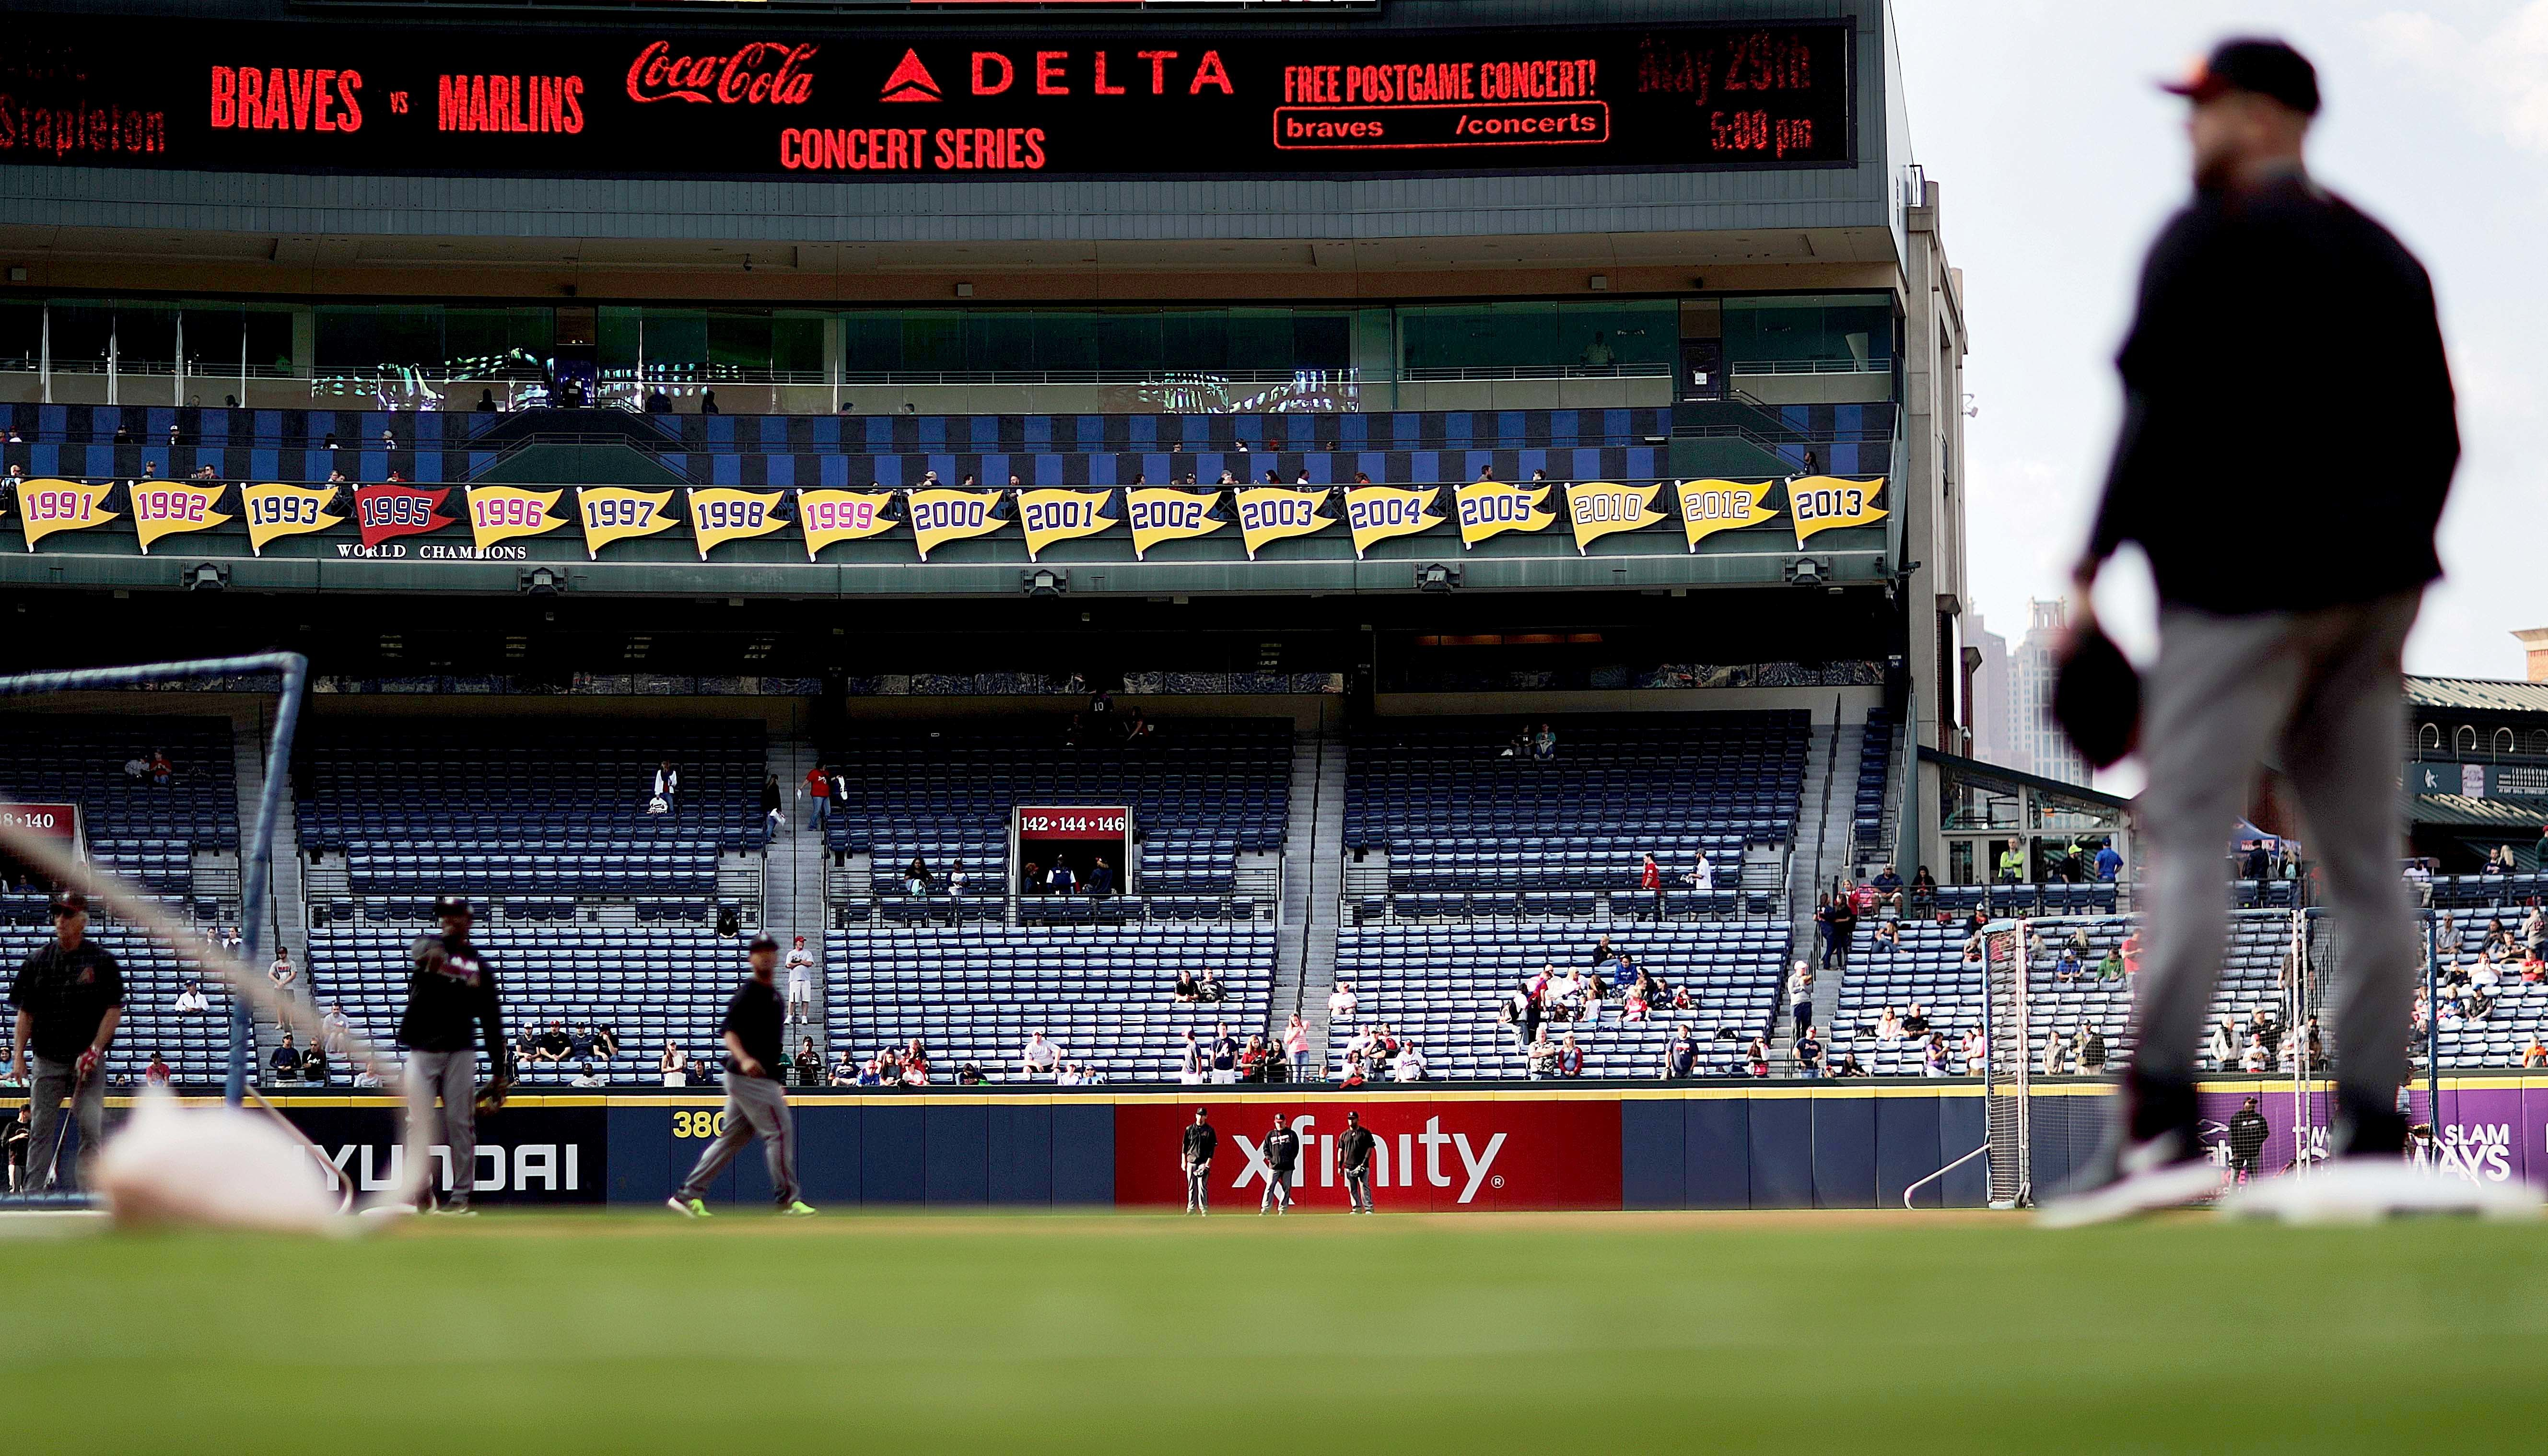 Banners hang in the outfield of Turner Field before the start of a baseball game between the Atlanta Braves and the Arizona Diamondbacks, Friday, May 6, 2016, in Atlanta. Banners line the left-field facade, an in-your-face reminder of what the Braves once